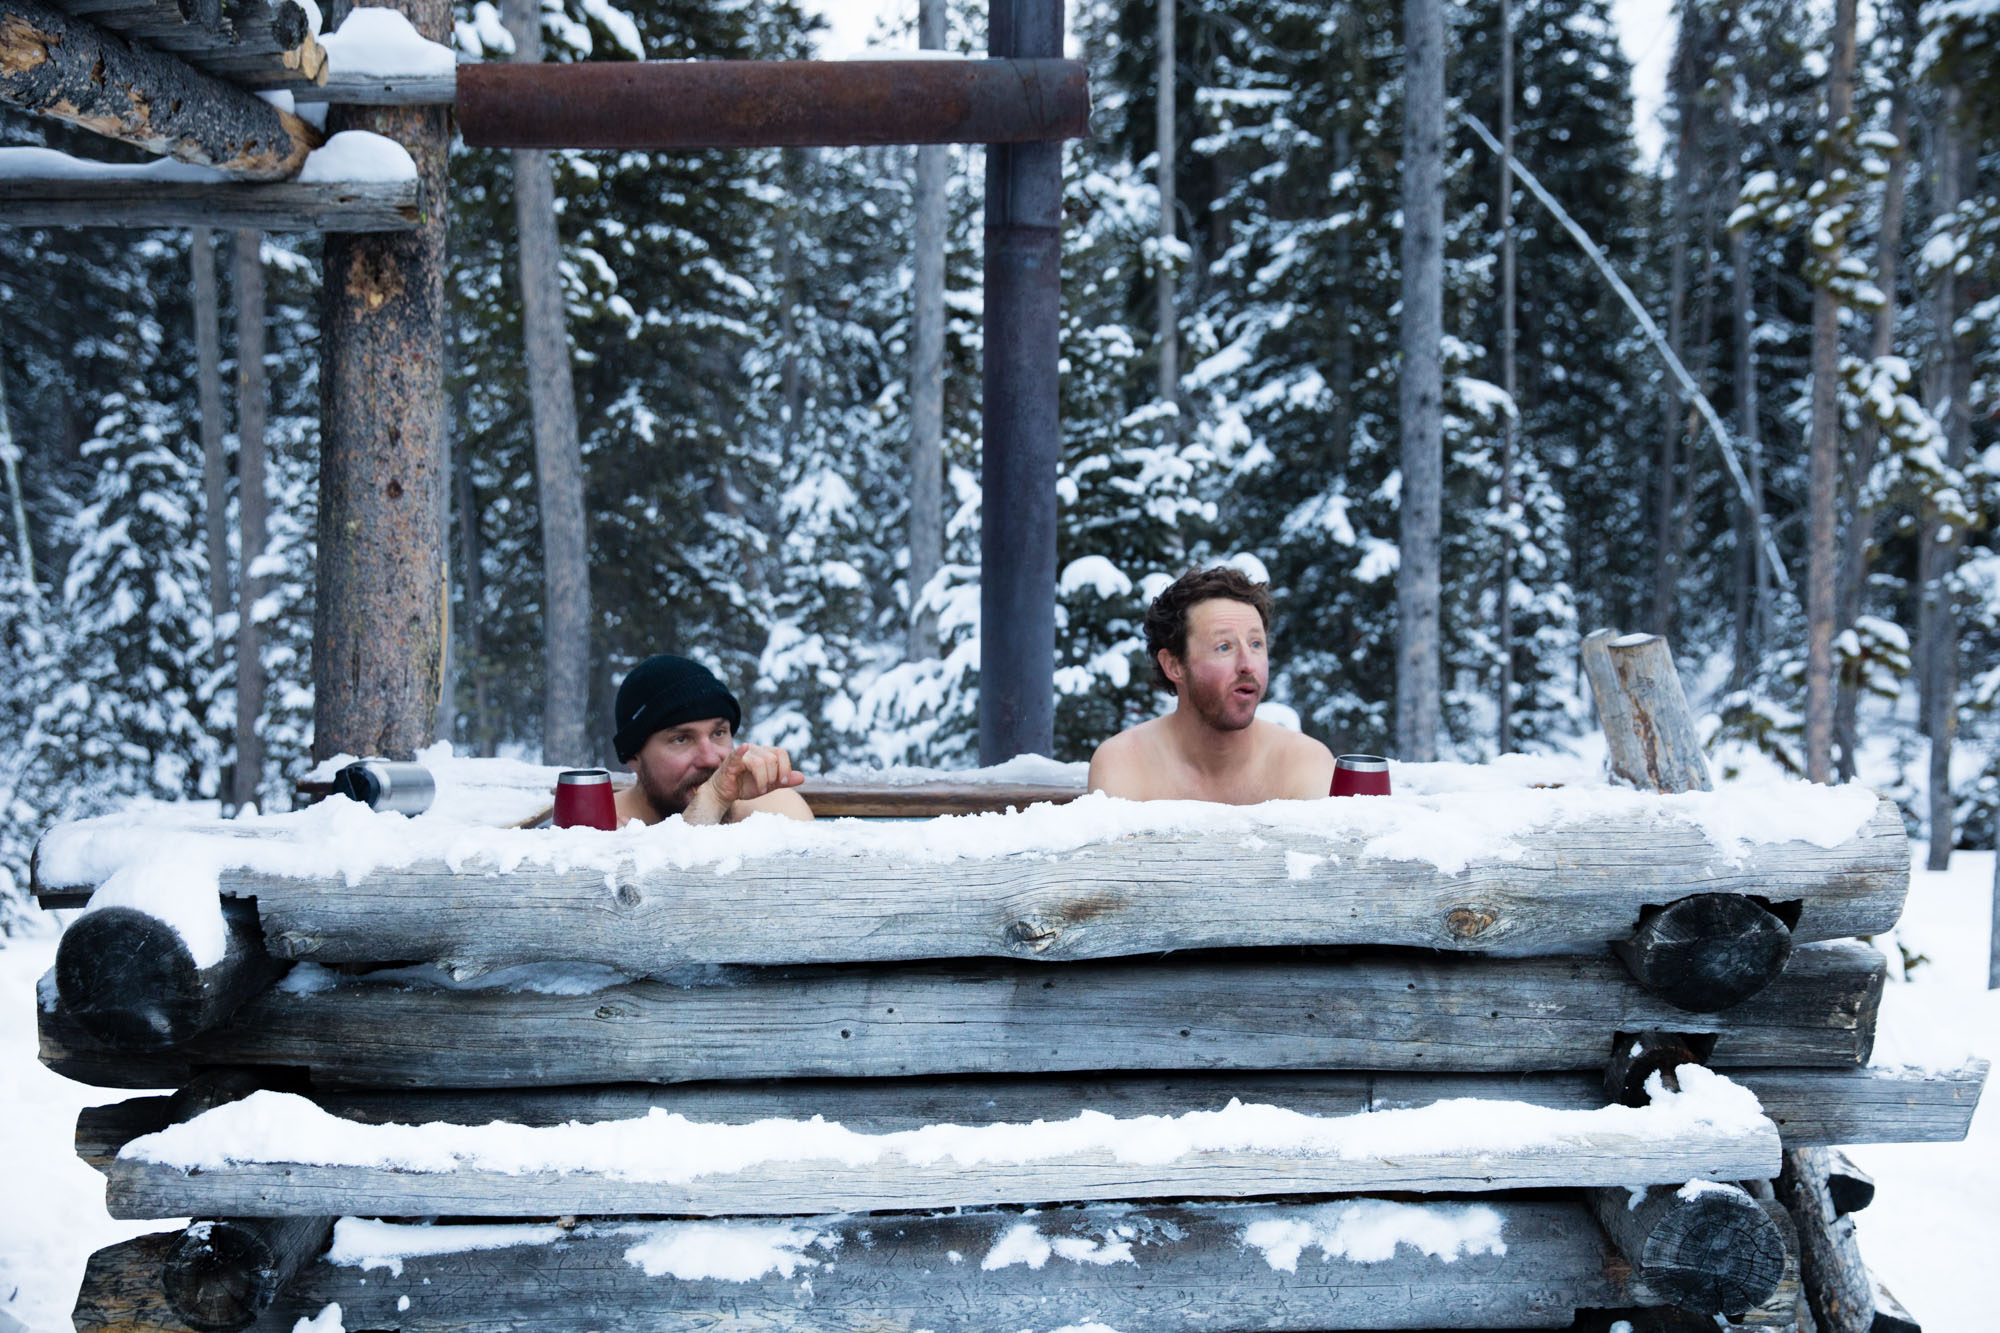 hot-tub-winter-active-lifestyle-yurt-idaho-backcountry-makr-carter-forrest-shearer